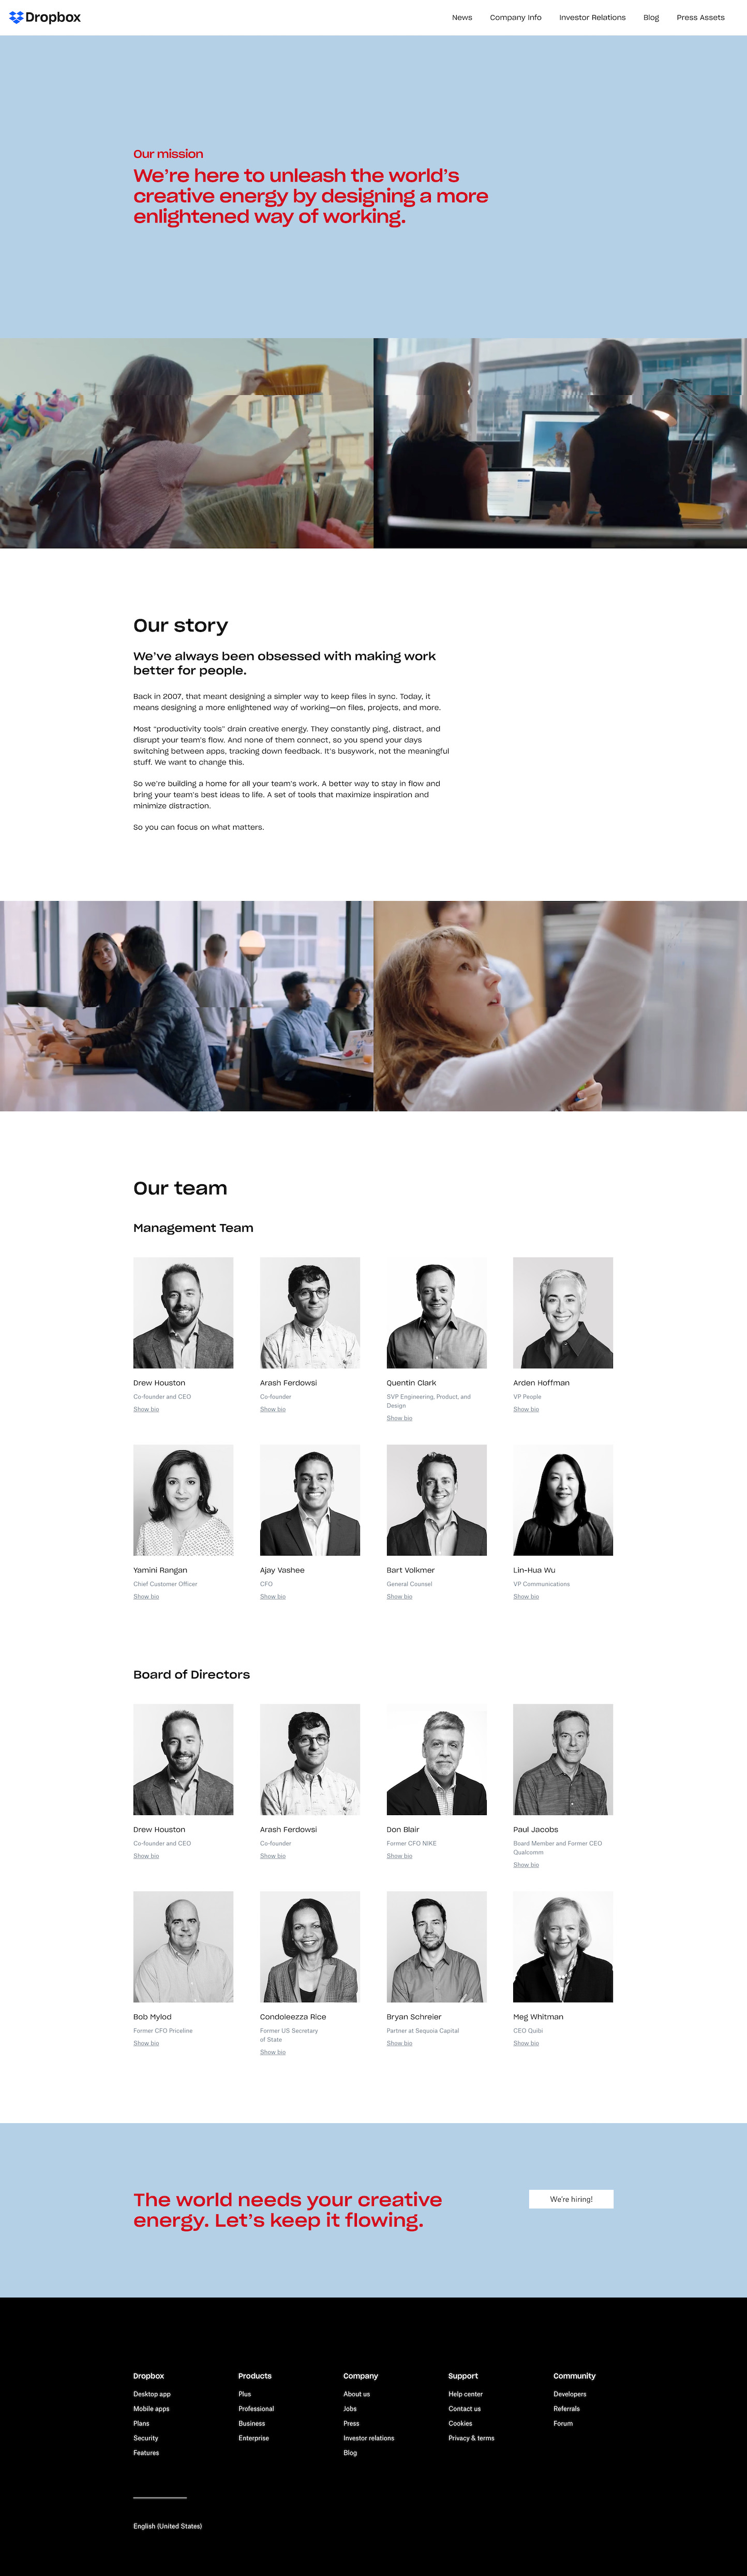 Screenshot of the About page from the Dropbox website.